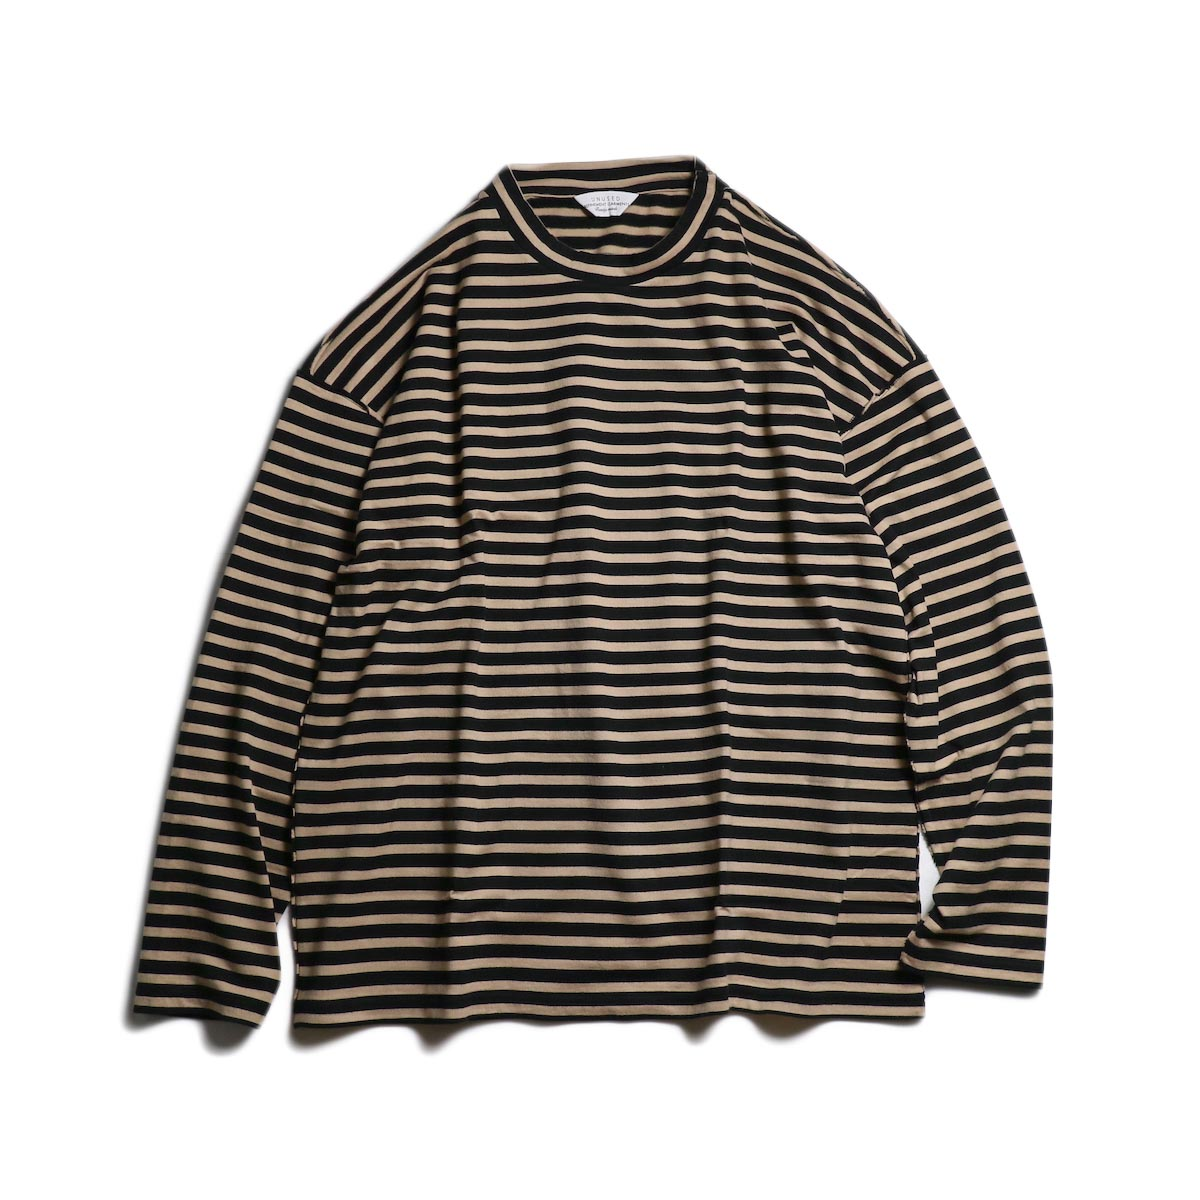 UNUSED / US1682 Long Sleeve Border T-Shirt -Beige/Black